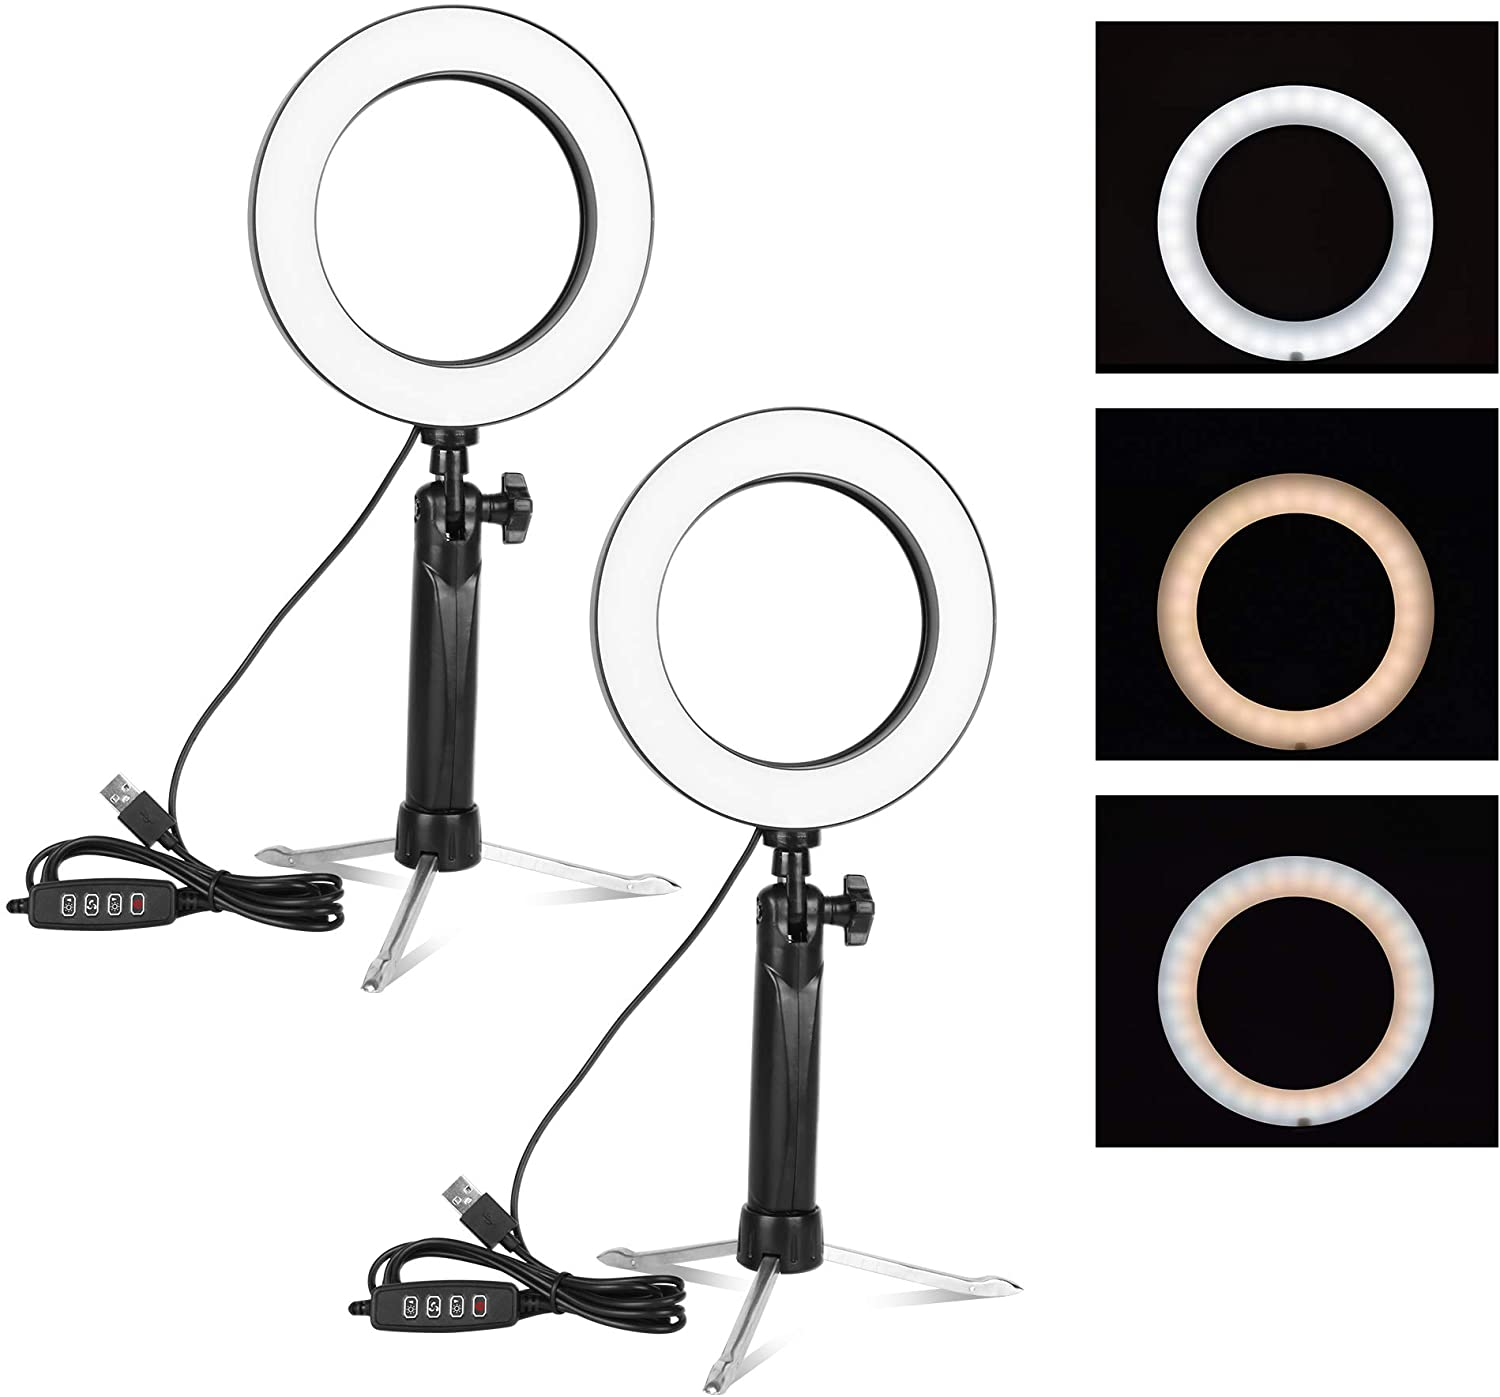 2 Sets Emart Photography LED Continuous Light Lamp 5500K Portable Camera Photo Lighting for Table Top Studio